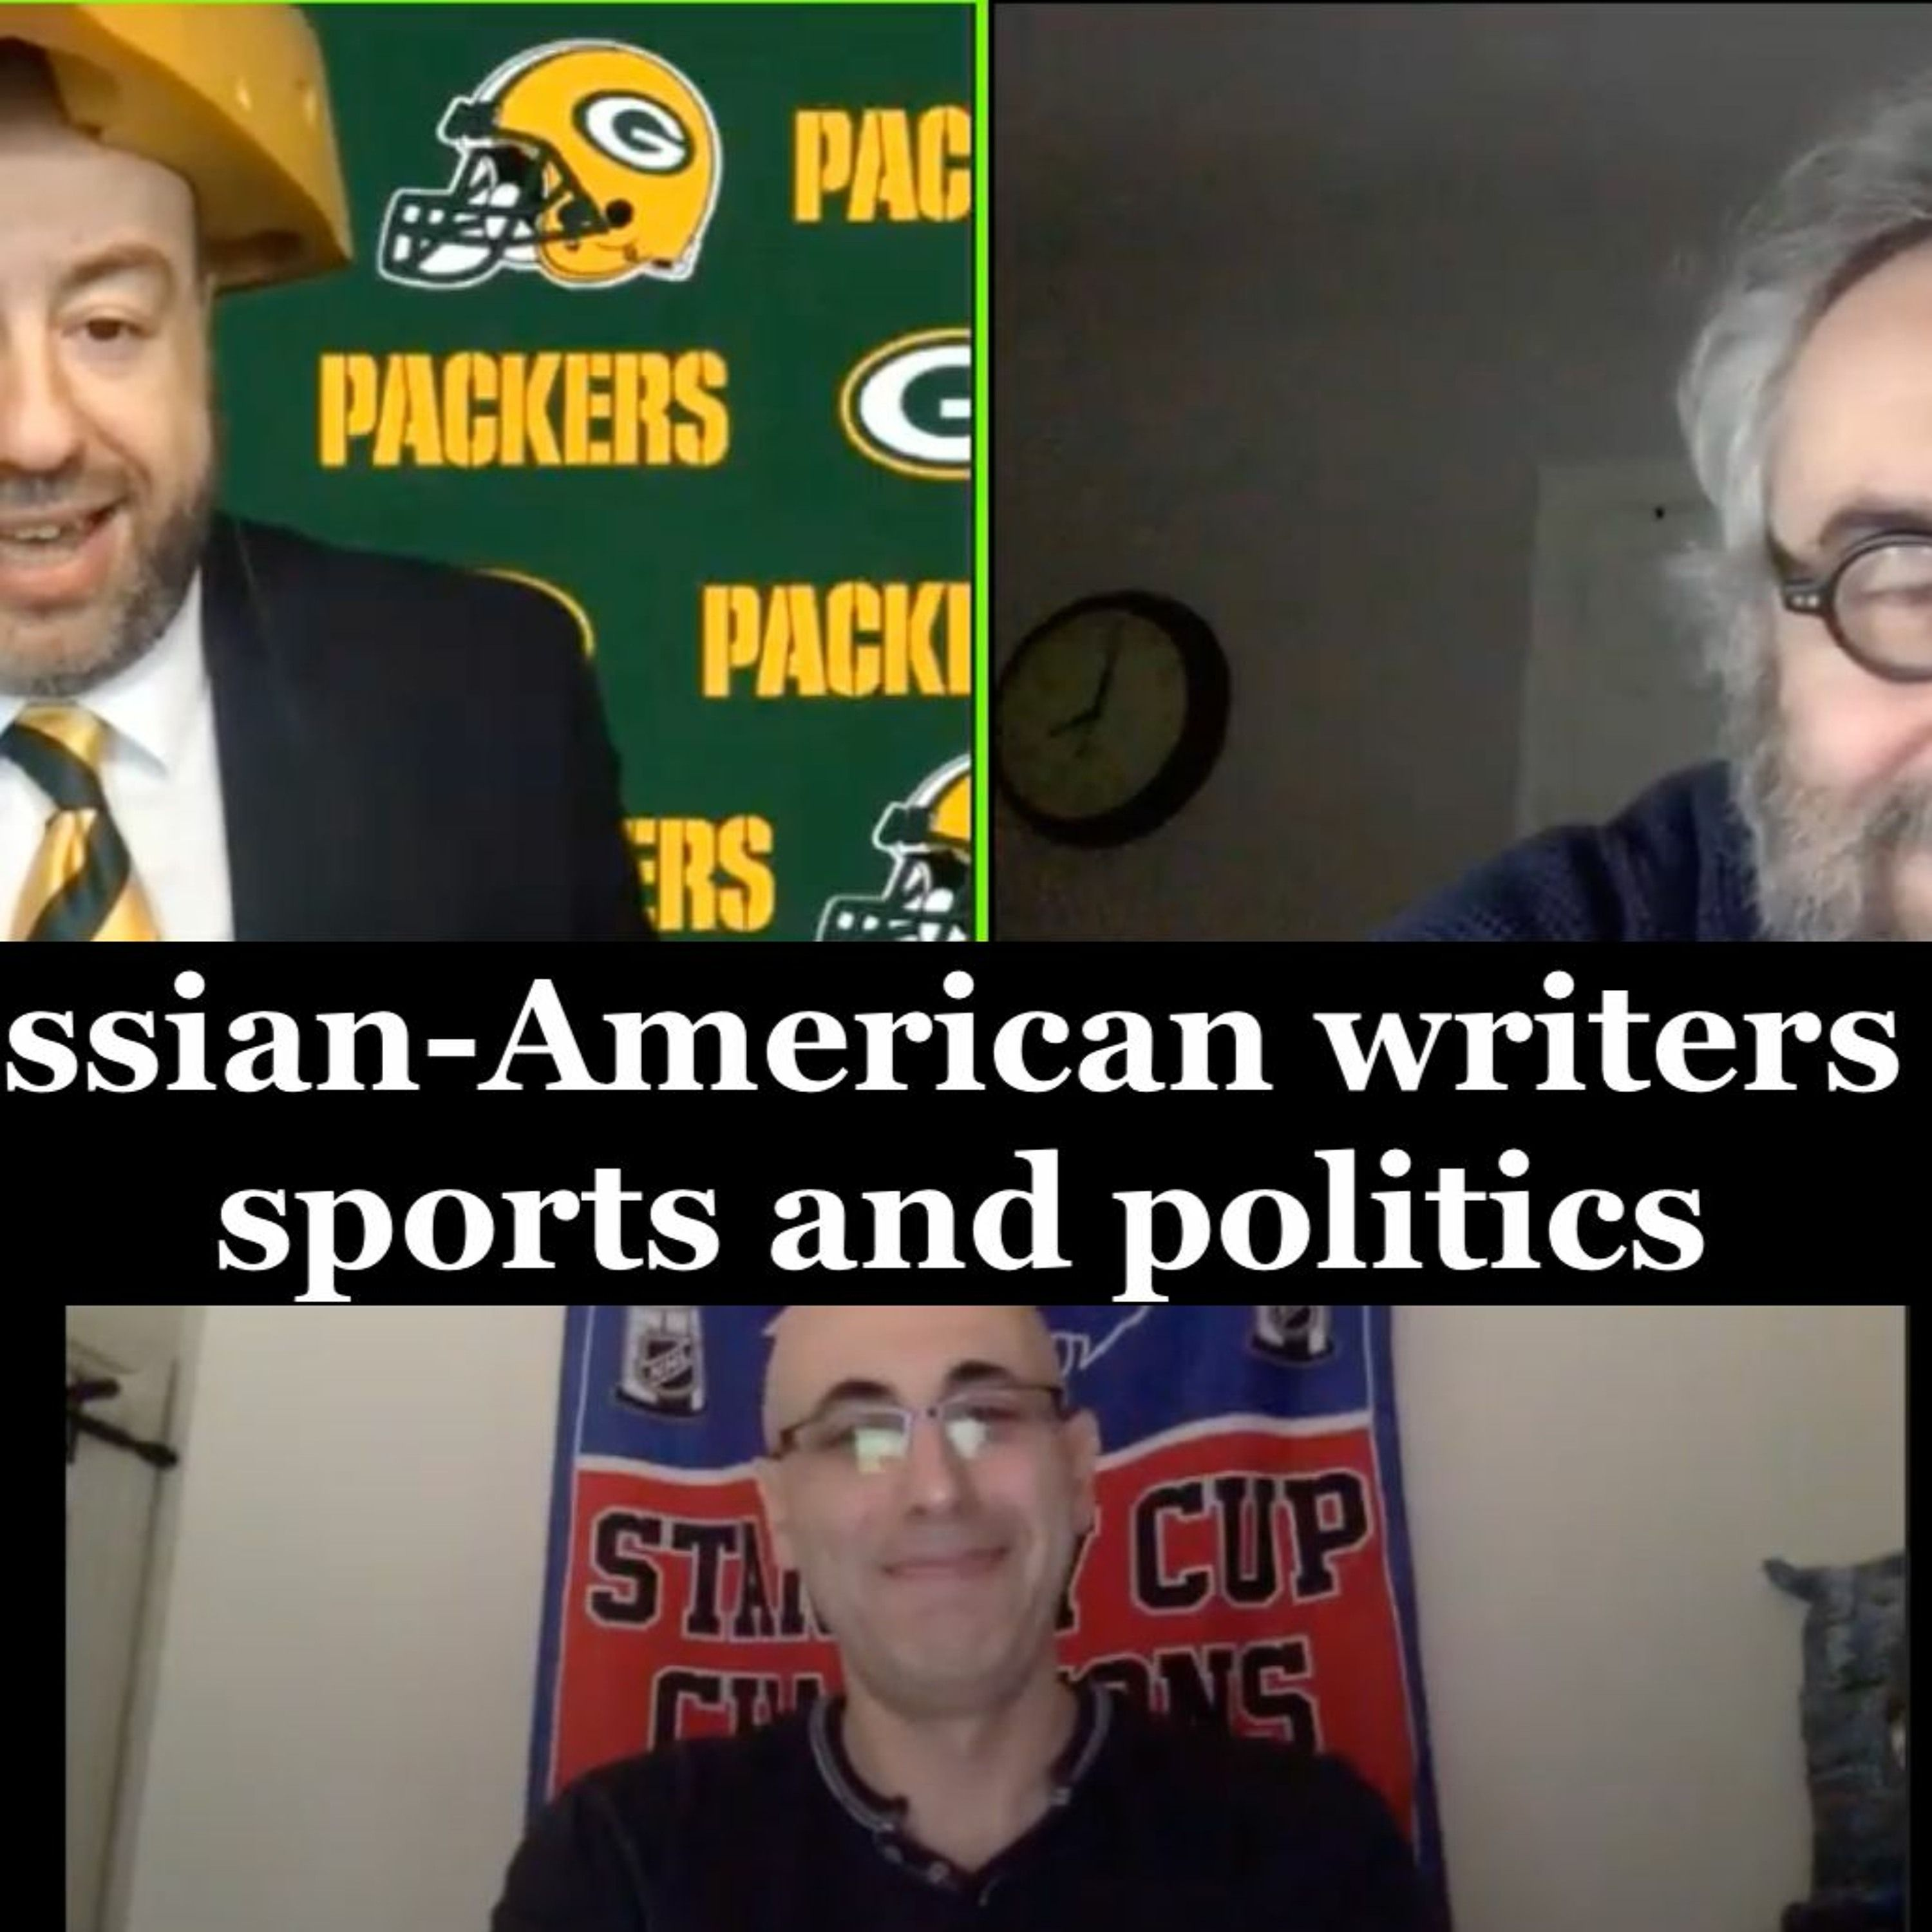 Russian-American writers Slava Malamud and Mikhail Iossel on sports and politics